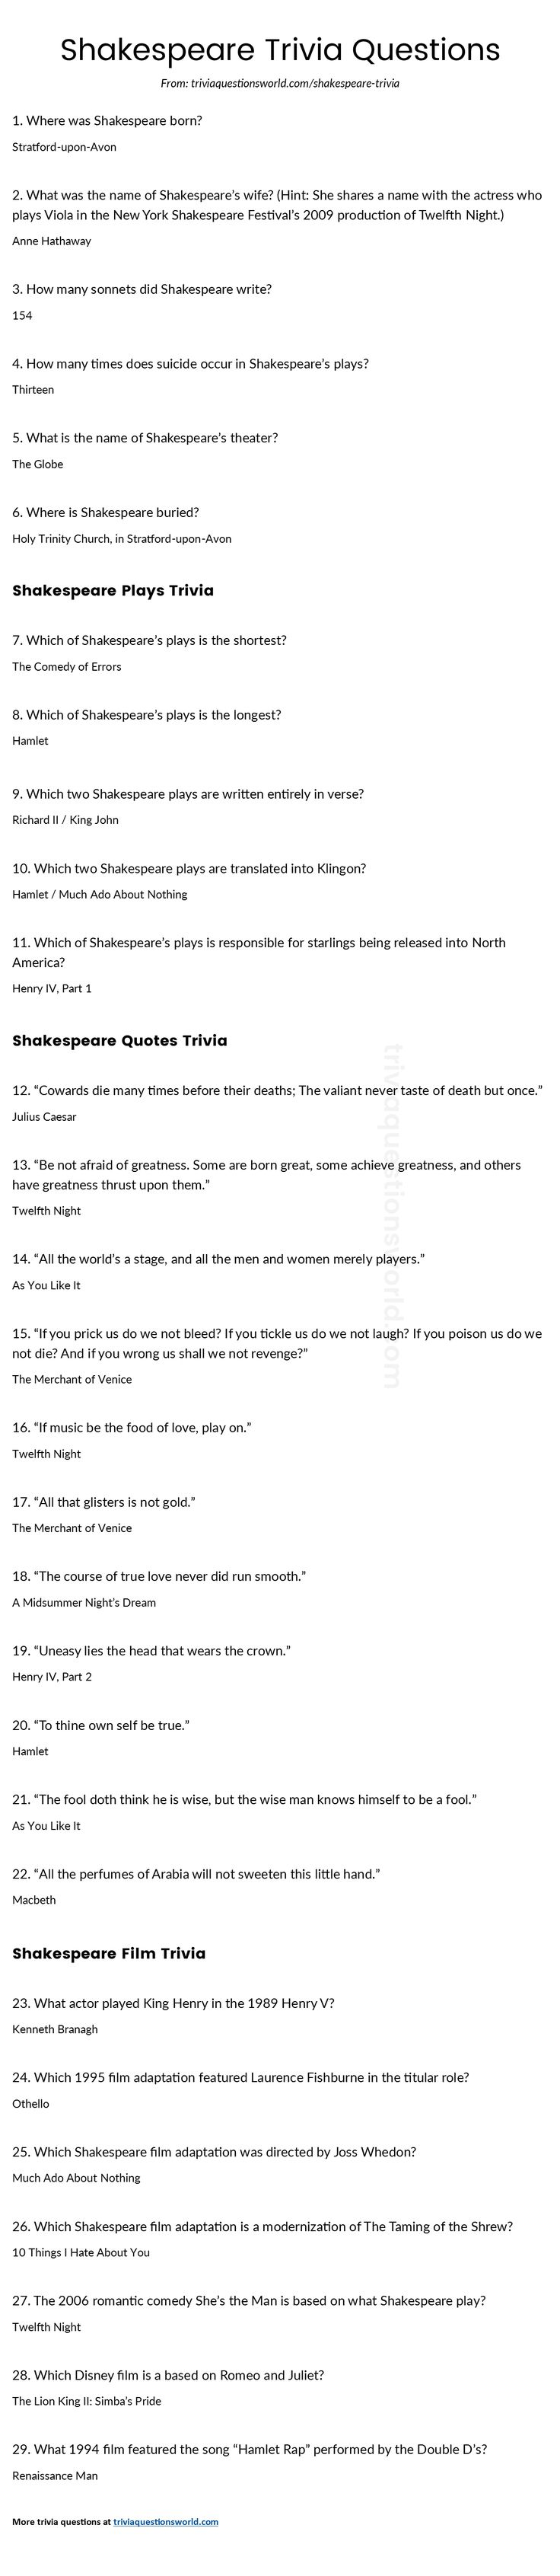 best ideas about trivia questions trivia games lots of great shakespeare trivia questions and answers